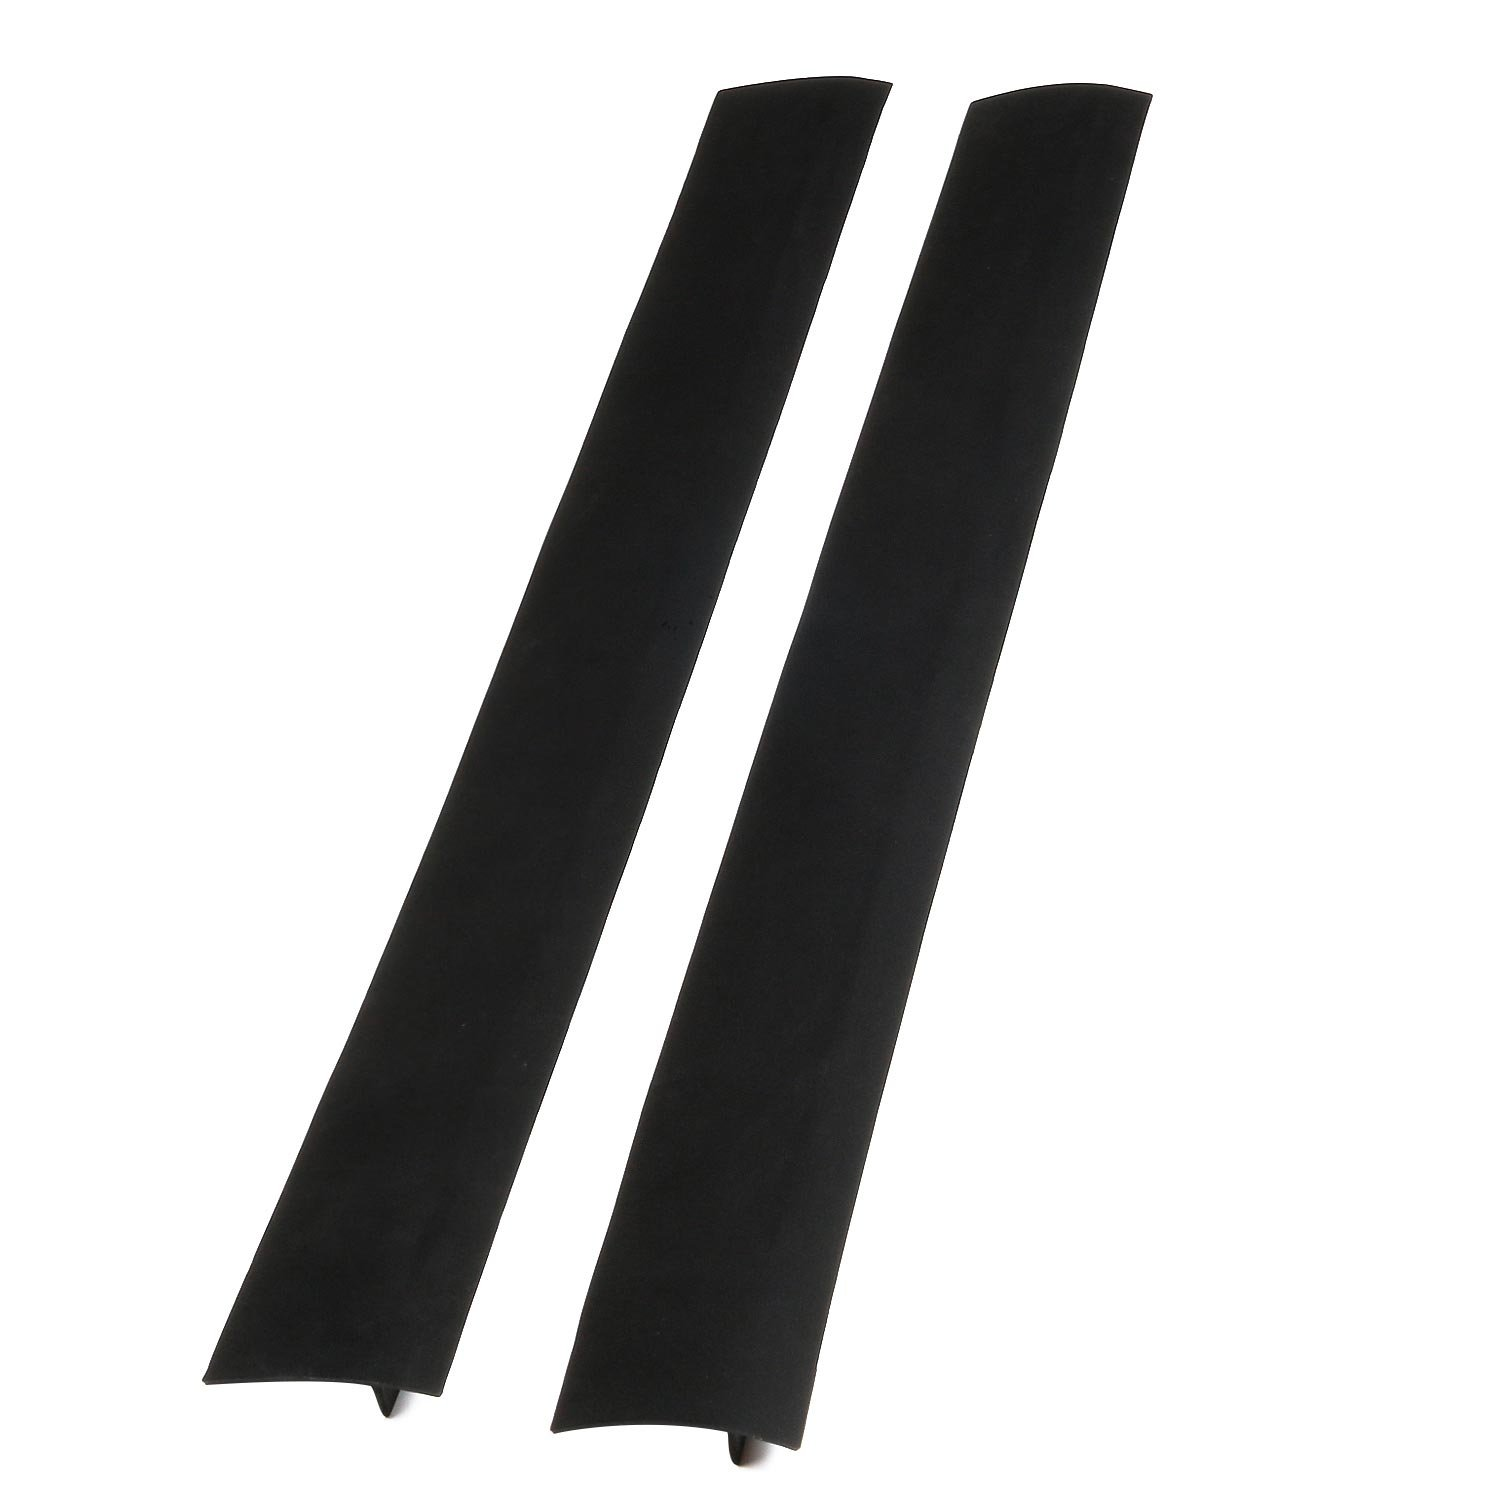 Flying Colors Kitchen Silicone Stove Counter Gap Cover - Set of 2 - Stove Gap, Gap for stoves, Cooktop Accessories, Black